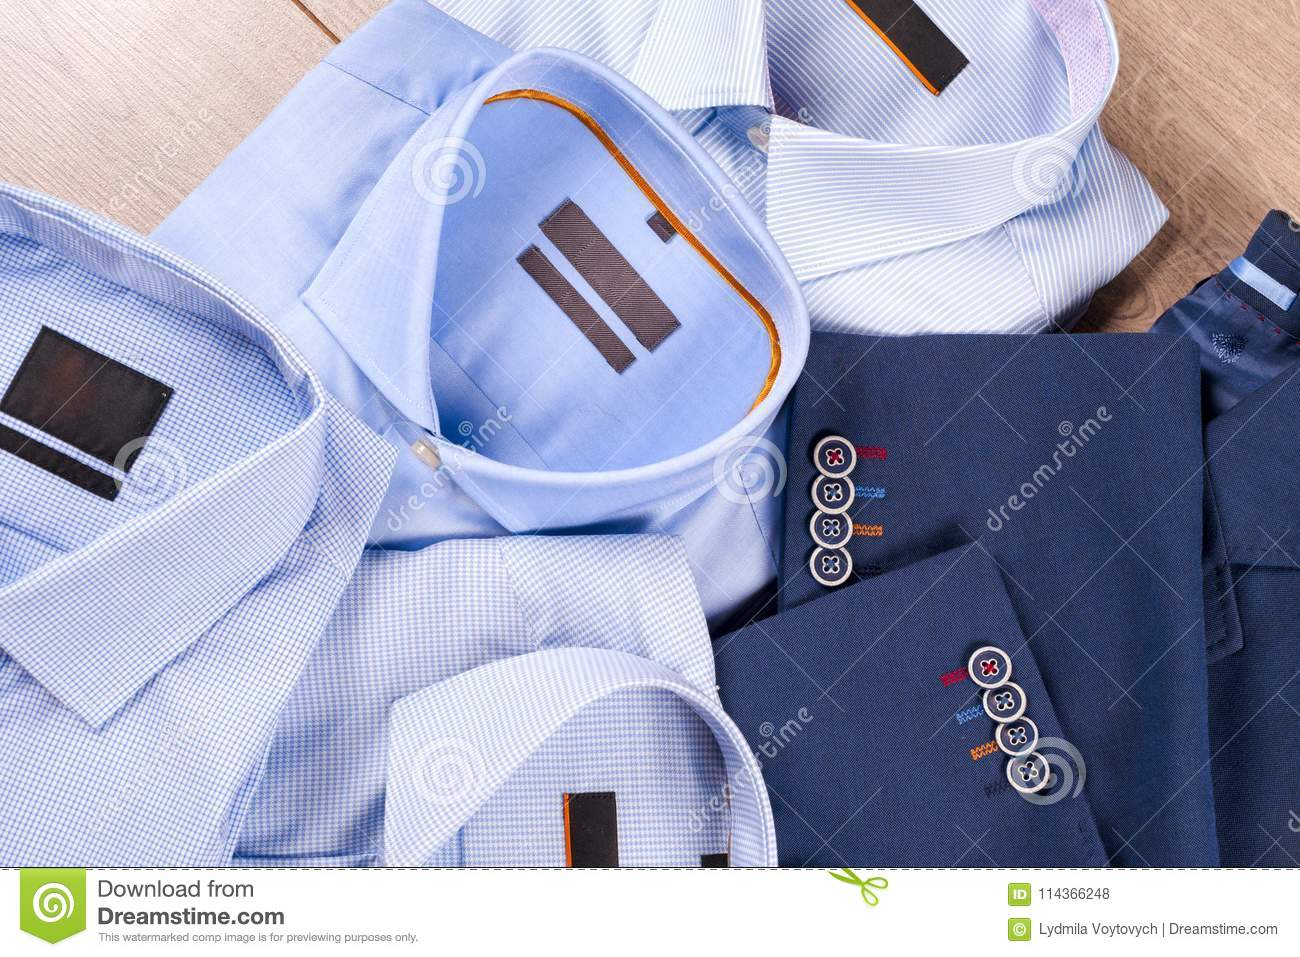 c0bc4646f1423 Set of classic mens clothes - blue suit, shirts, brown shoes, belt and tie  on wooden background. Fashion. Men`s accessories set. Top view.